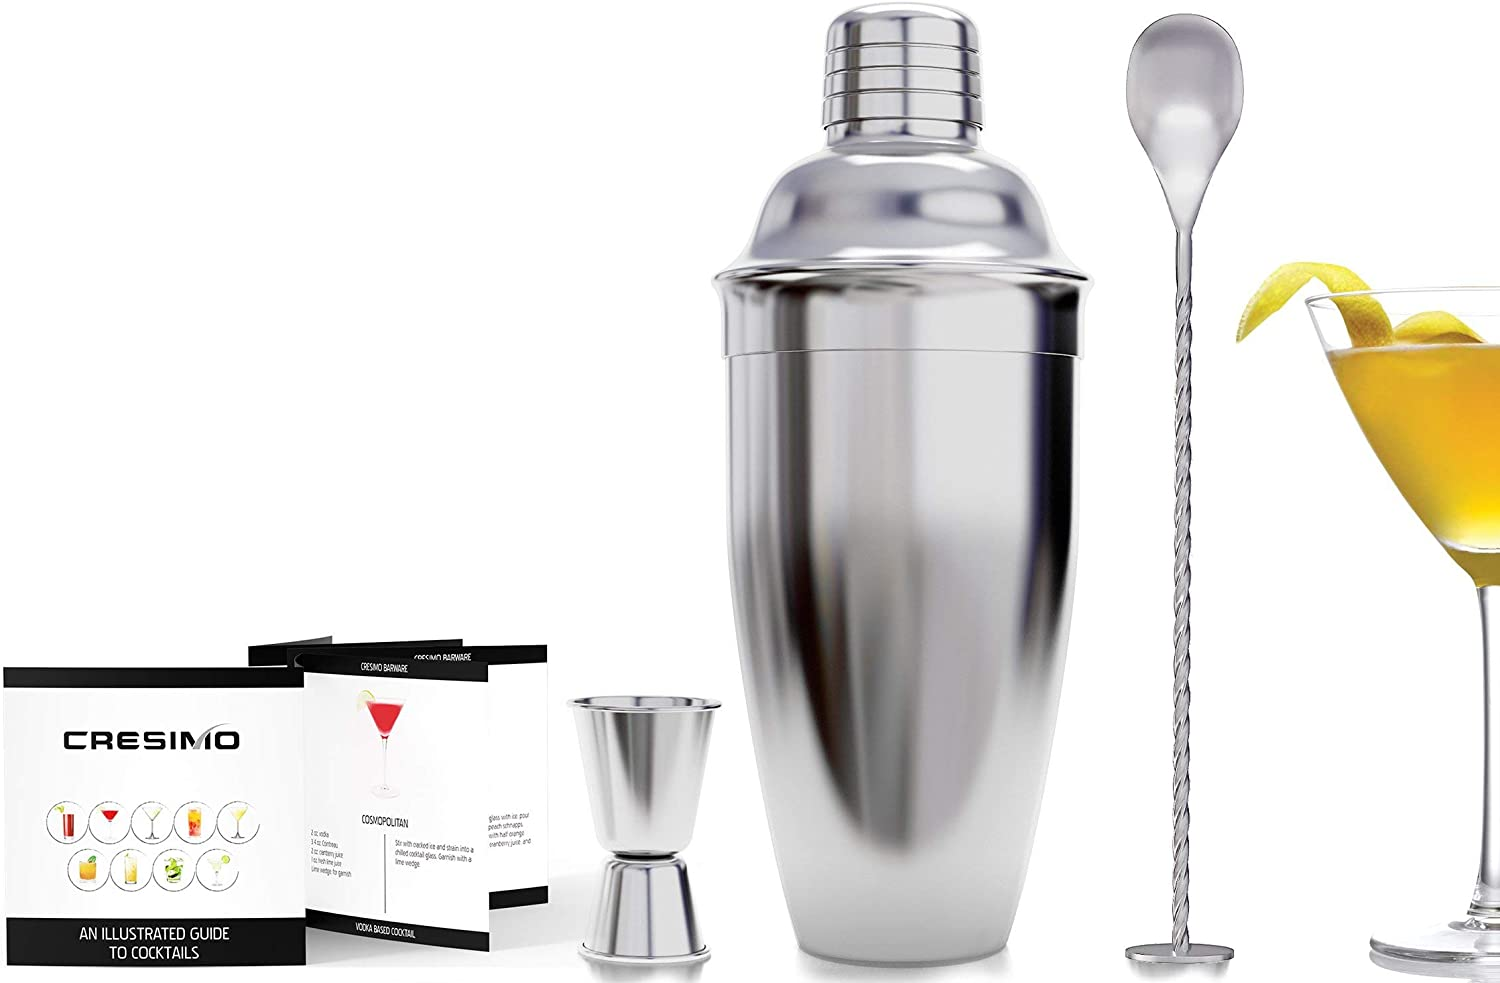 24 Ounce Cocktail Shaker Martini Shaker 18//8 Stainless Steel Bar Tool with Built-in Strainer Bartender Cocktail Shaker by KING VILLA coctelera profesional de acero inoxidable